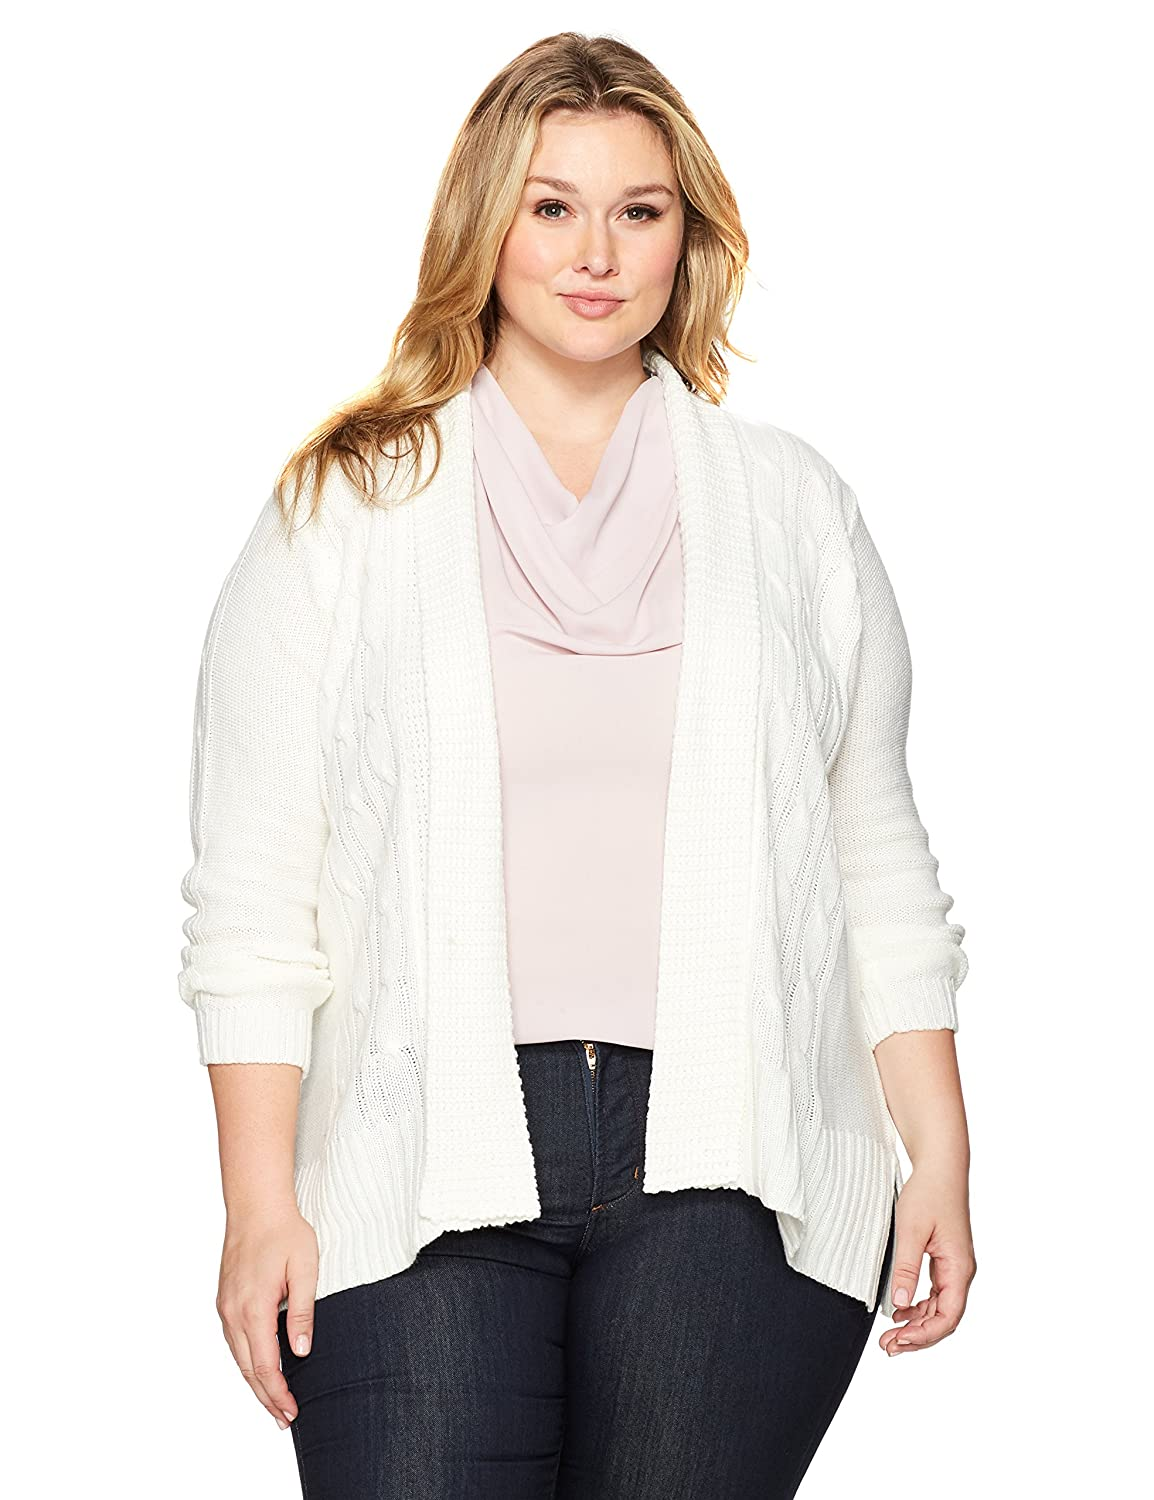 Jason Maxwell Women's Long Sleeve Solid Turnback Collar Cardigan 170860